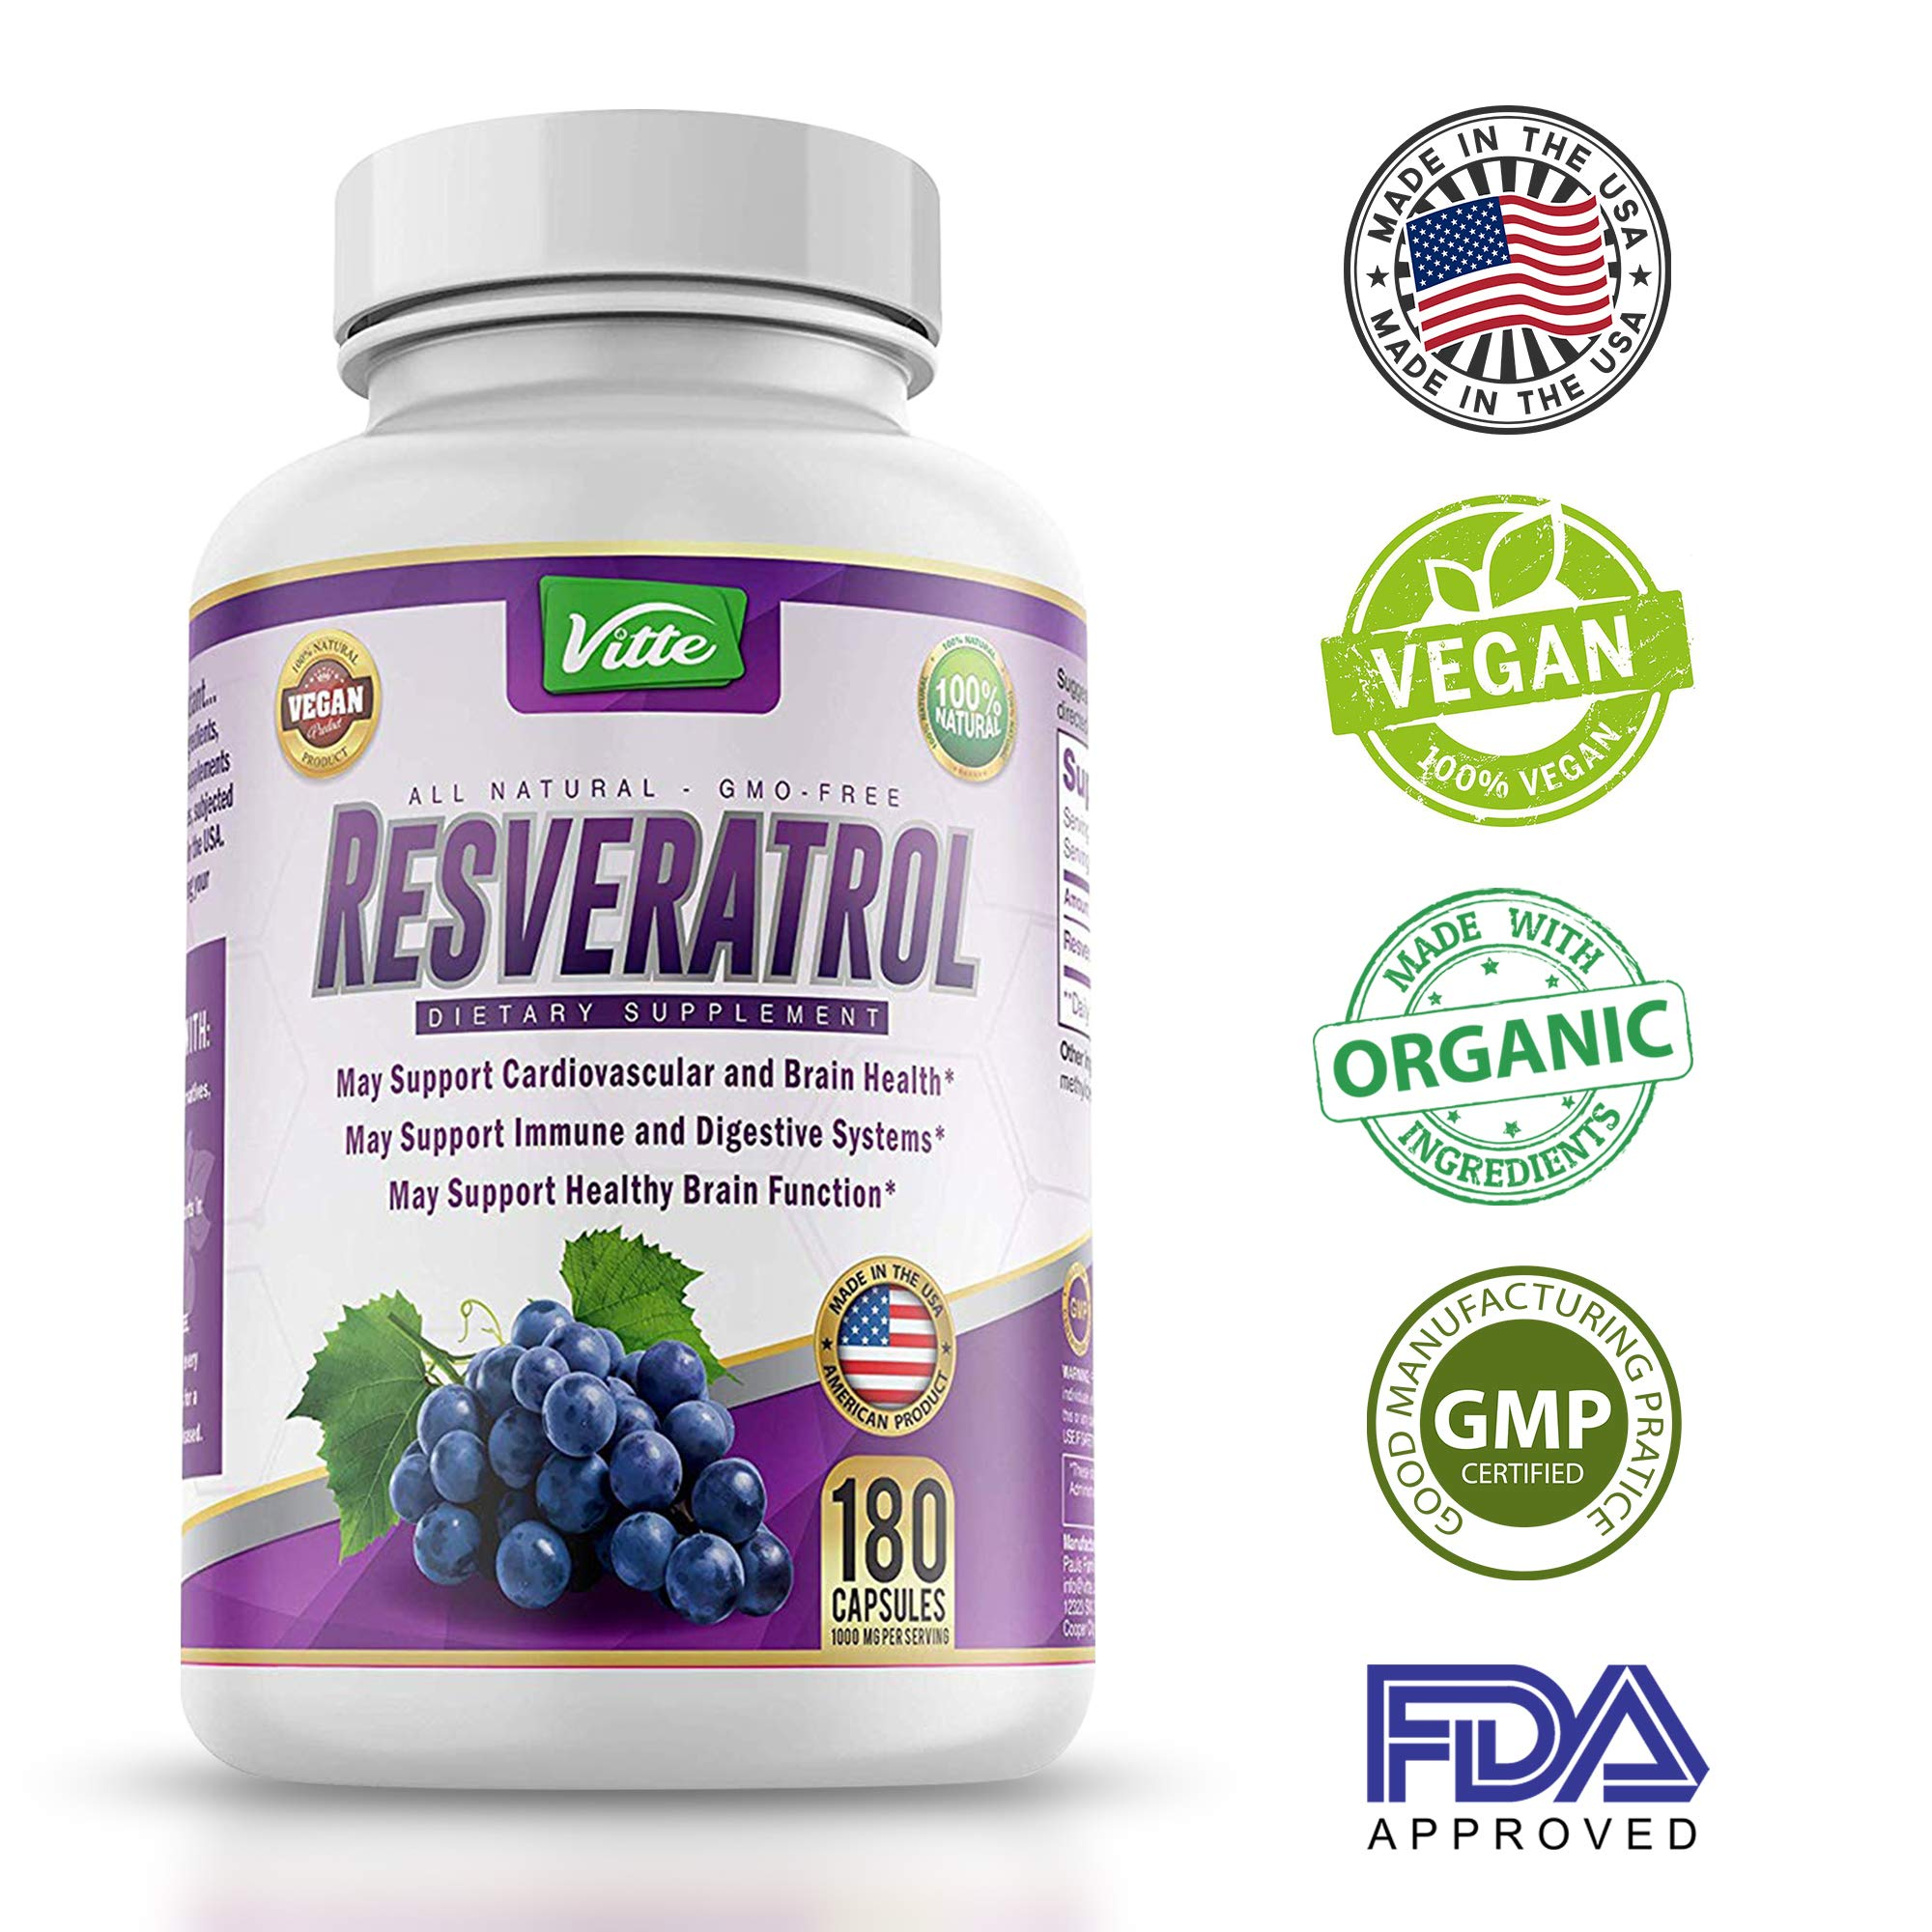 100% Pure Resveratrol - 1000mg Per Serving Max Strength 180 Capsules Antioxidant Supplement Extract Natural Trans-Resveratrol Pills for Heart Health and Weight Loss Made in USA by vitte